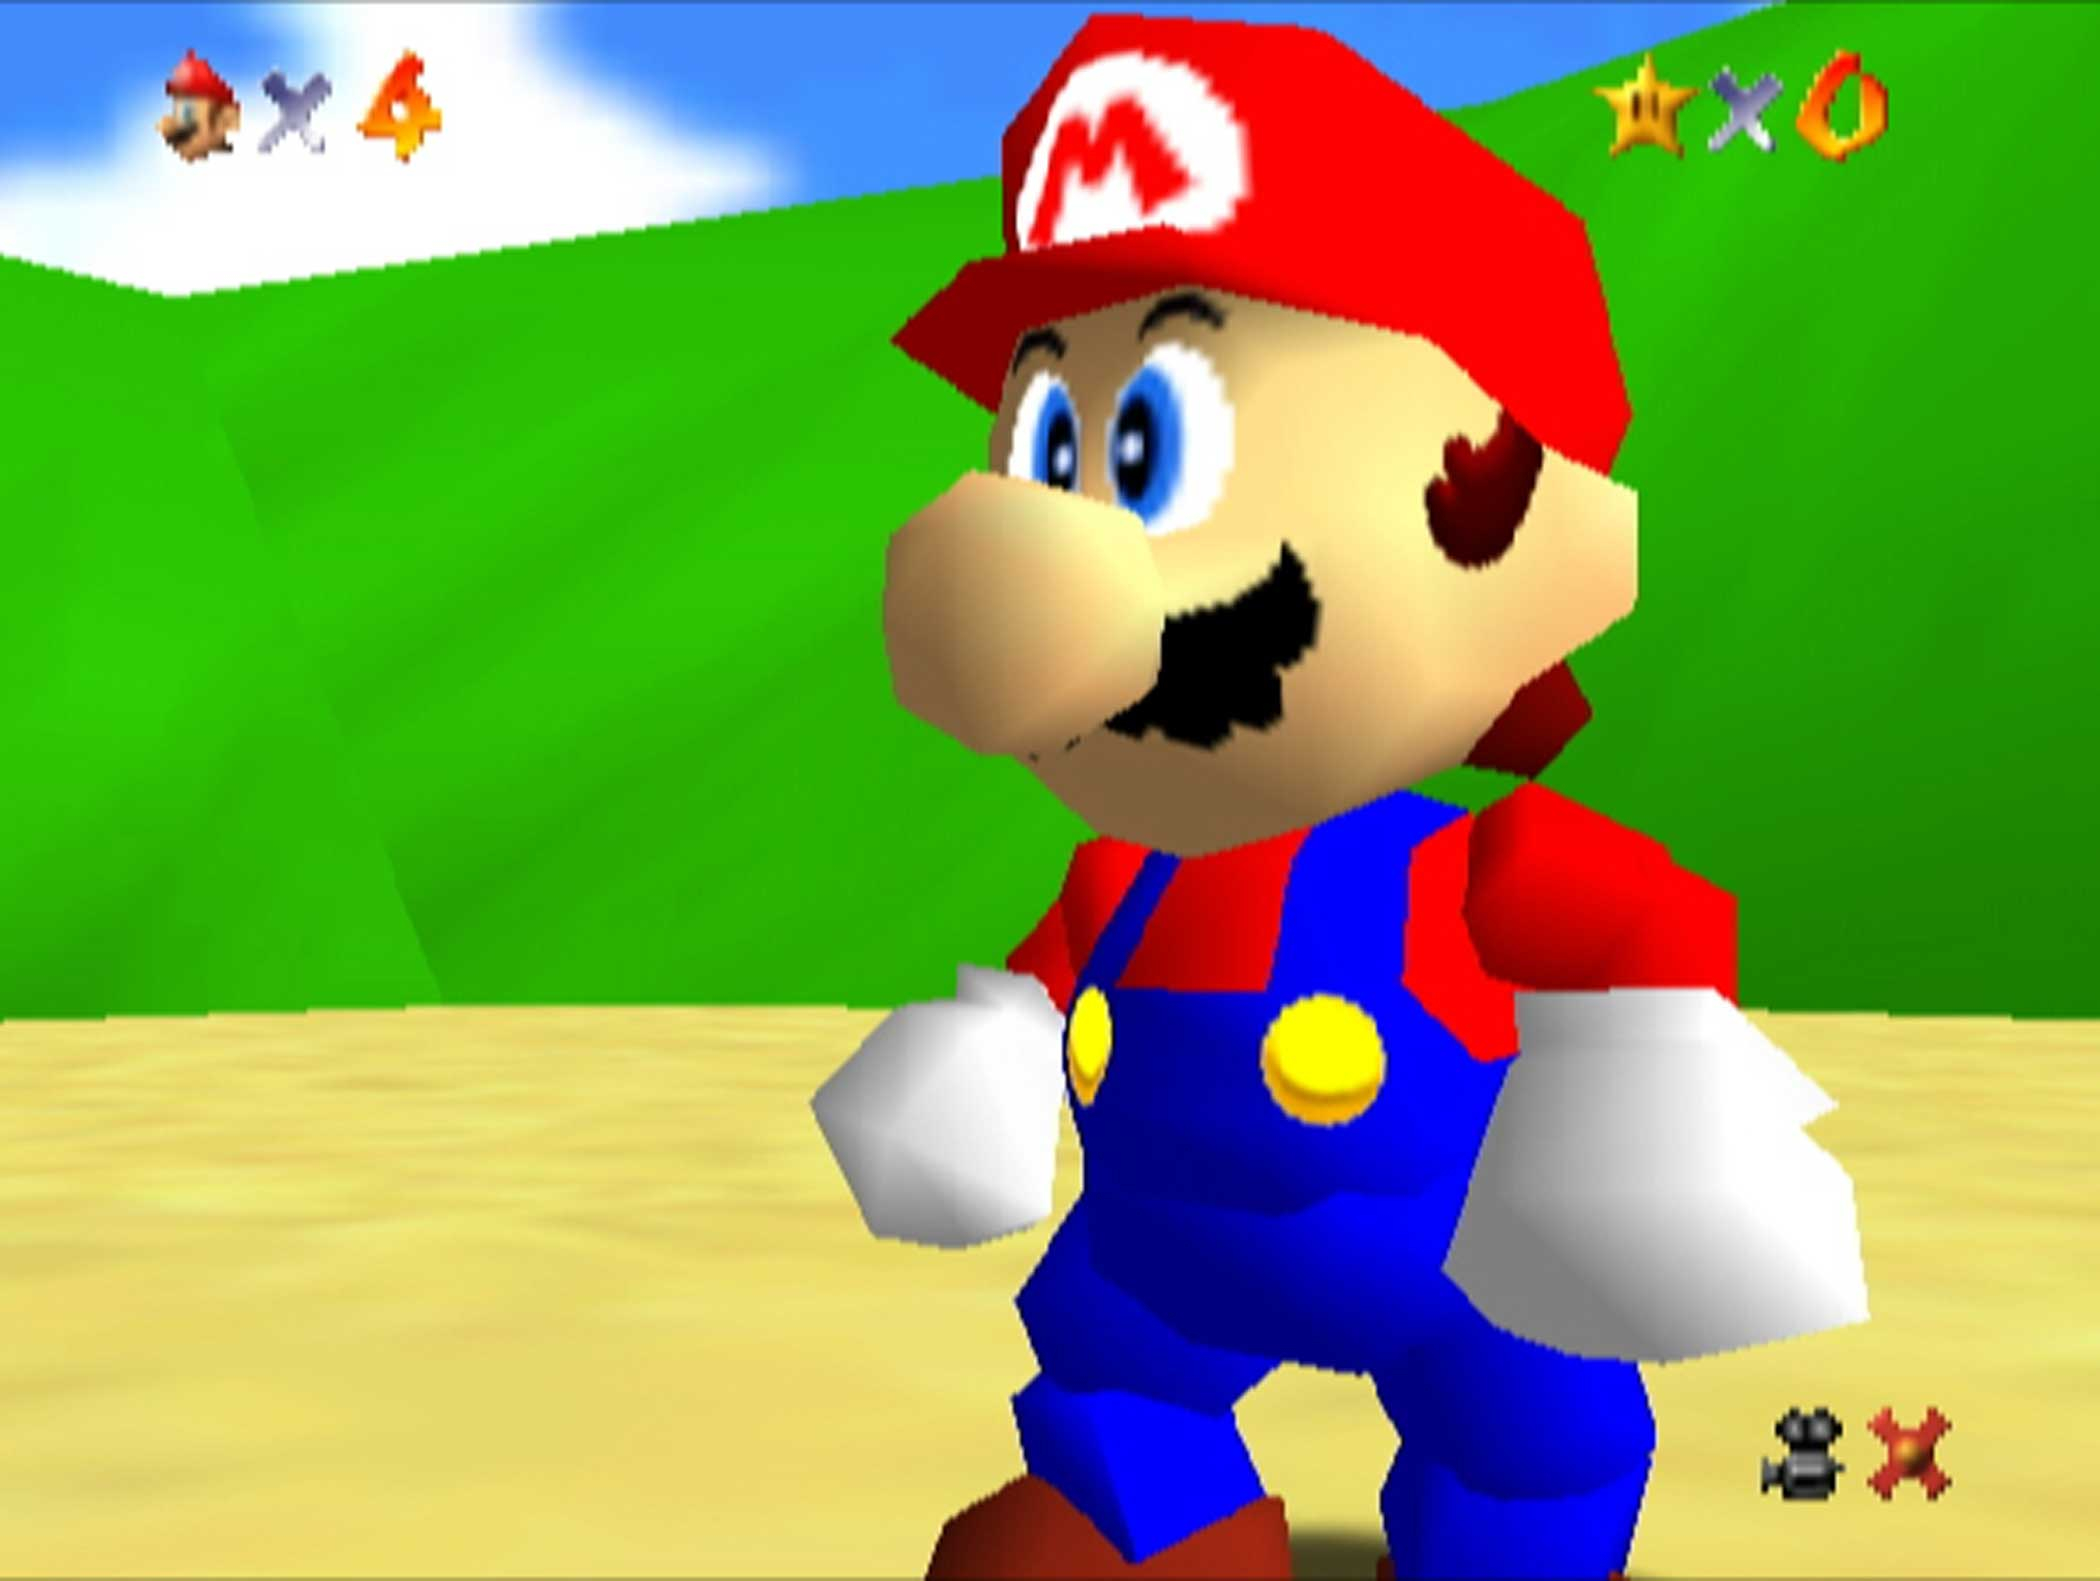 1996: Super Mario 64                                                              A revolutionary Nintendo 64 system-launcher and the first fully three-dimensional Mario game, Super Mario 64 did for 3D gaming what Super Mario Bros. had for sidescrollers a decade prior, ushering in a 360-degree control scheme that became the genre standard.